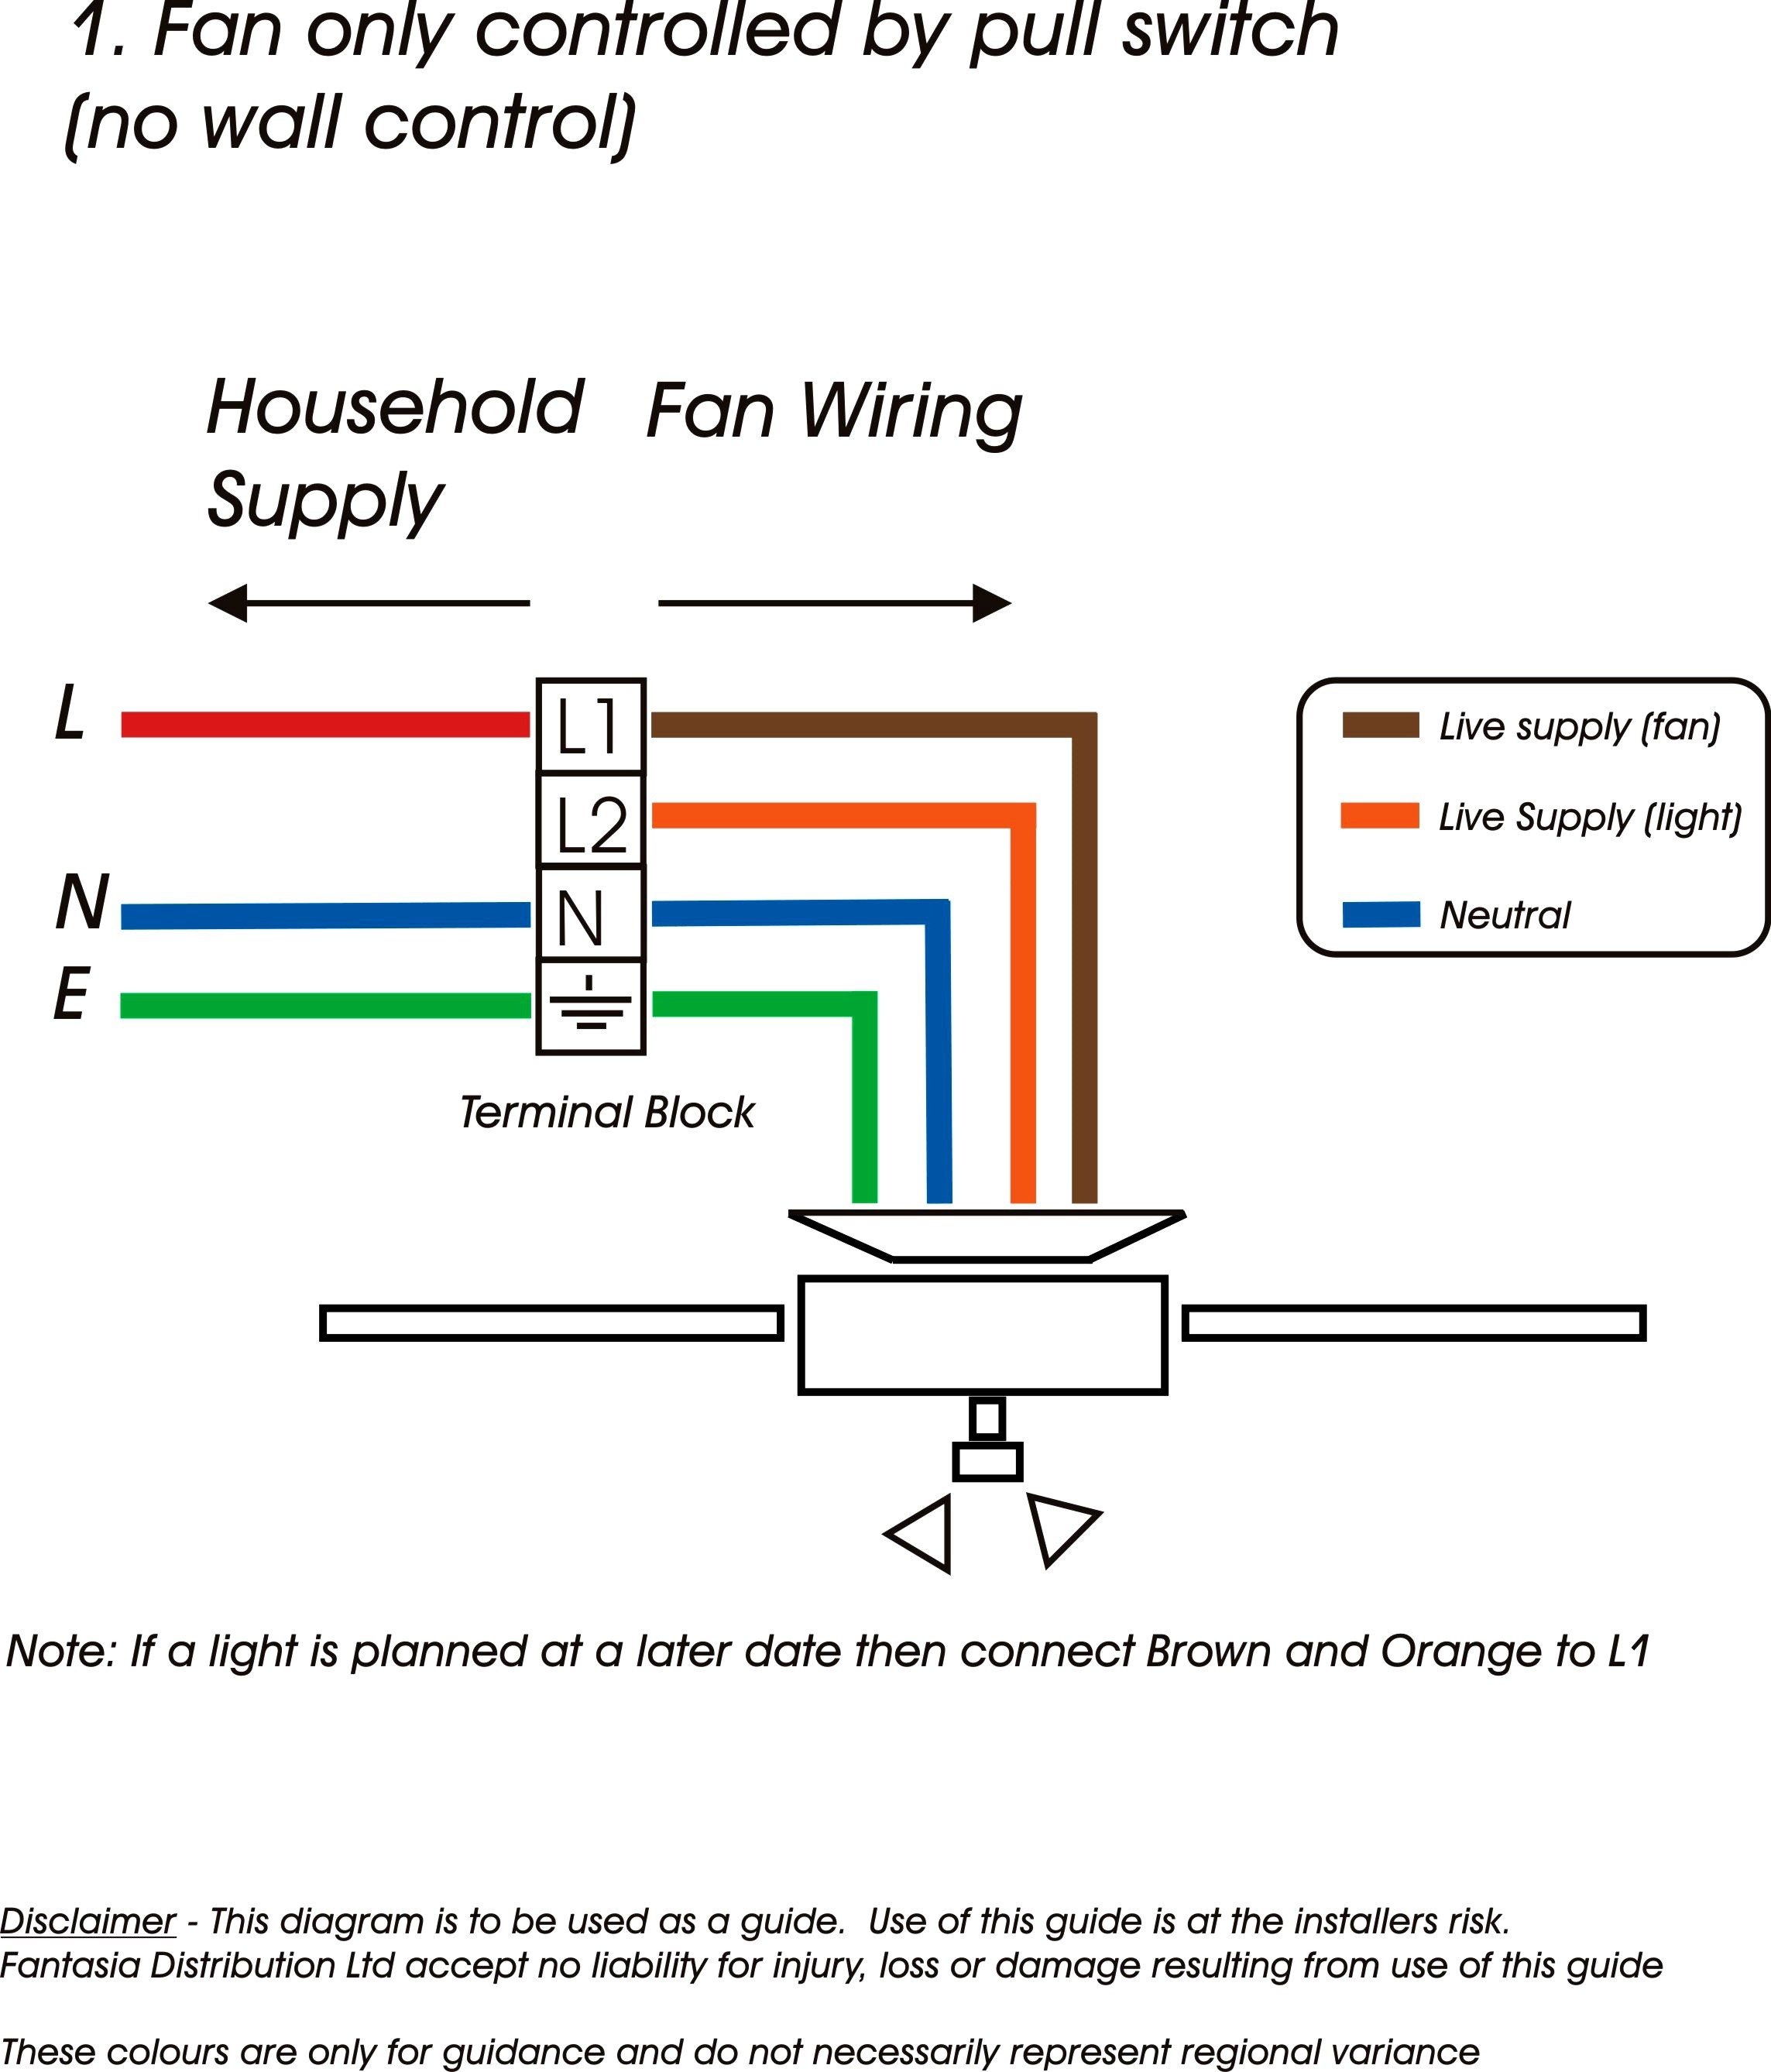 Mobile Home Wiring Guide Real Diagram Light Switch Explained Diagrams Rh Dmdelectro Co Electrical Service